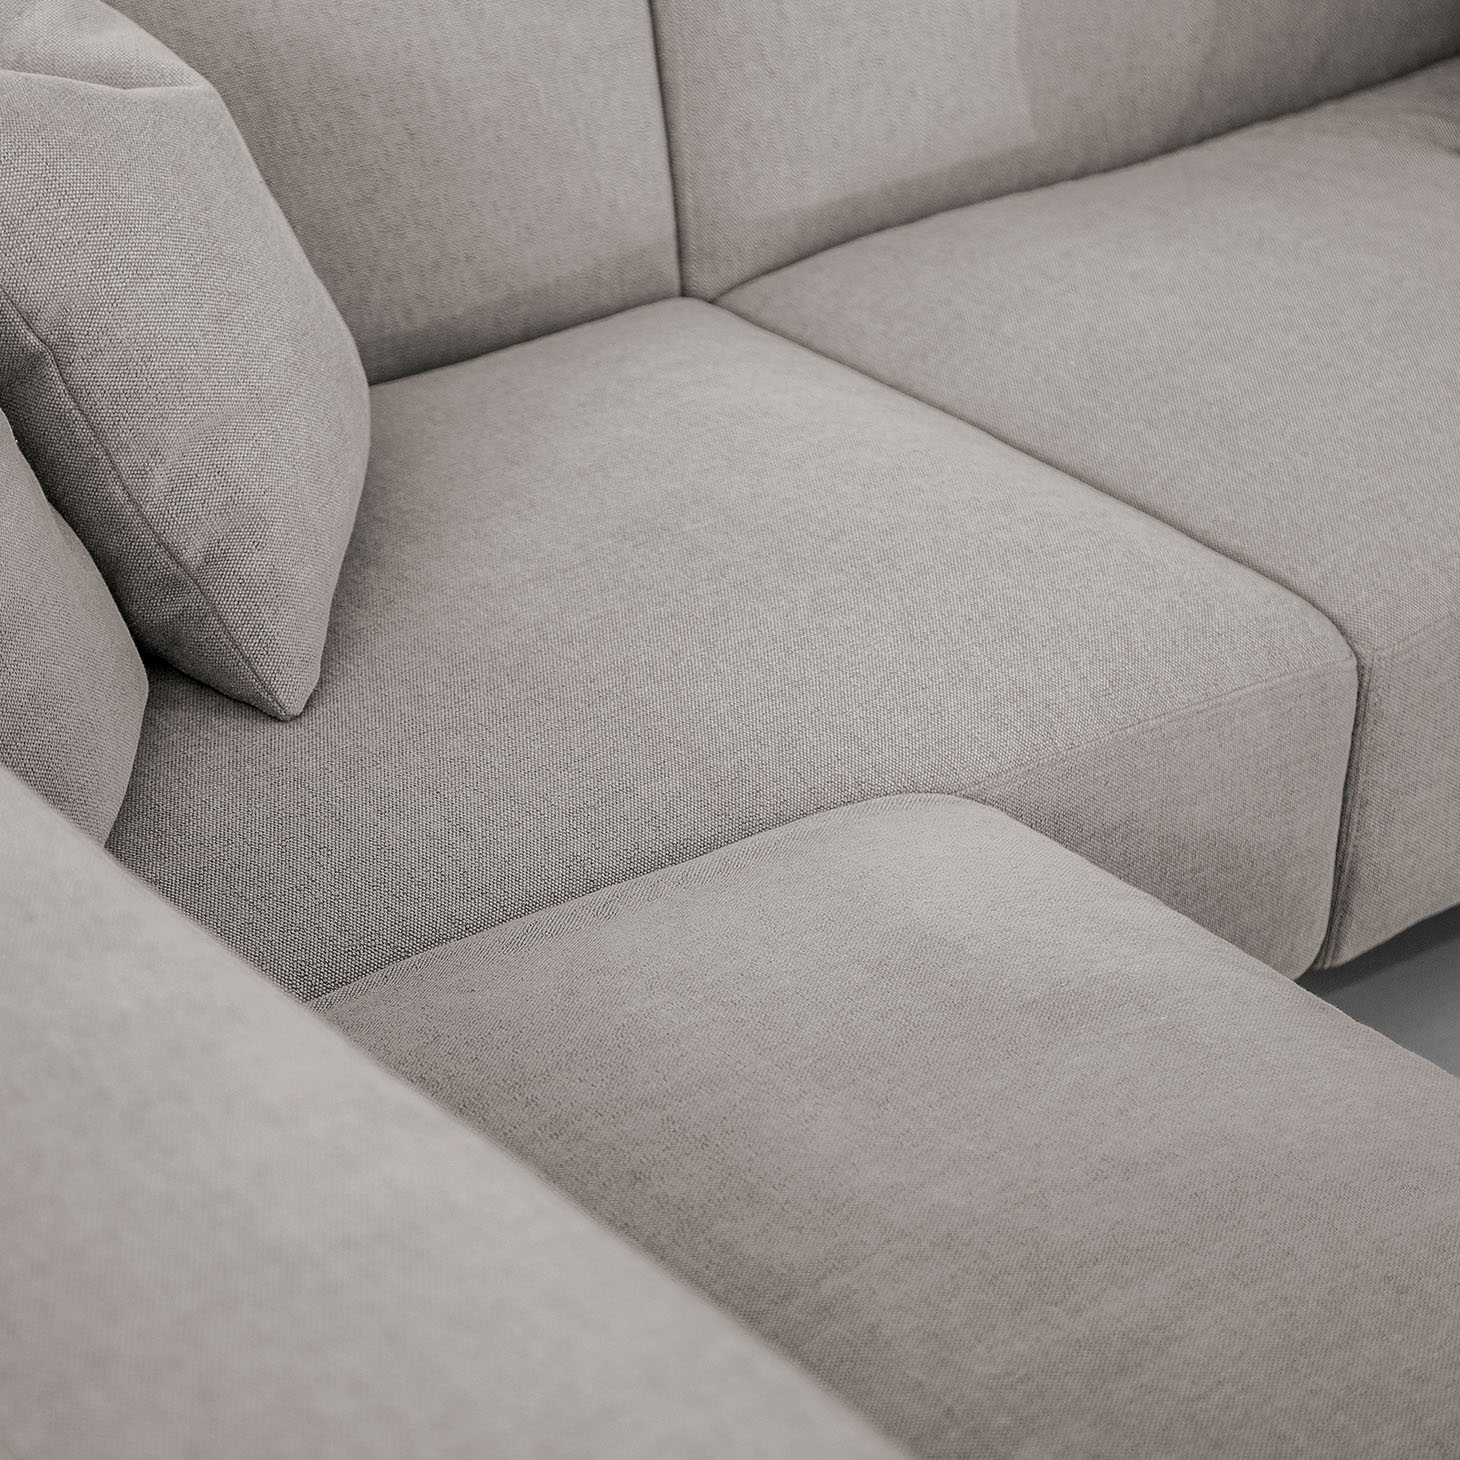 Endless sofa detail